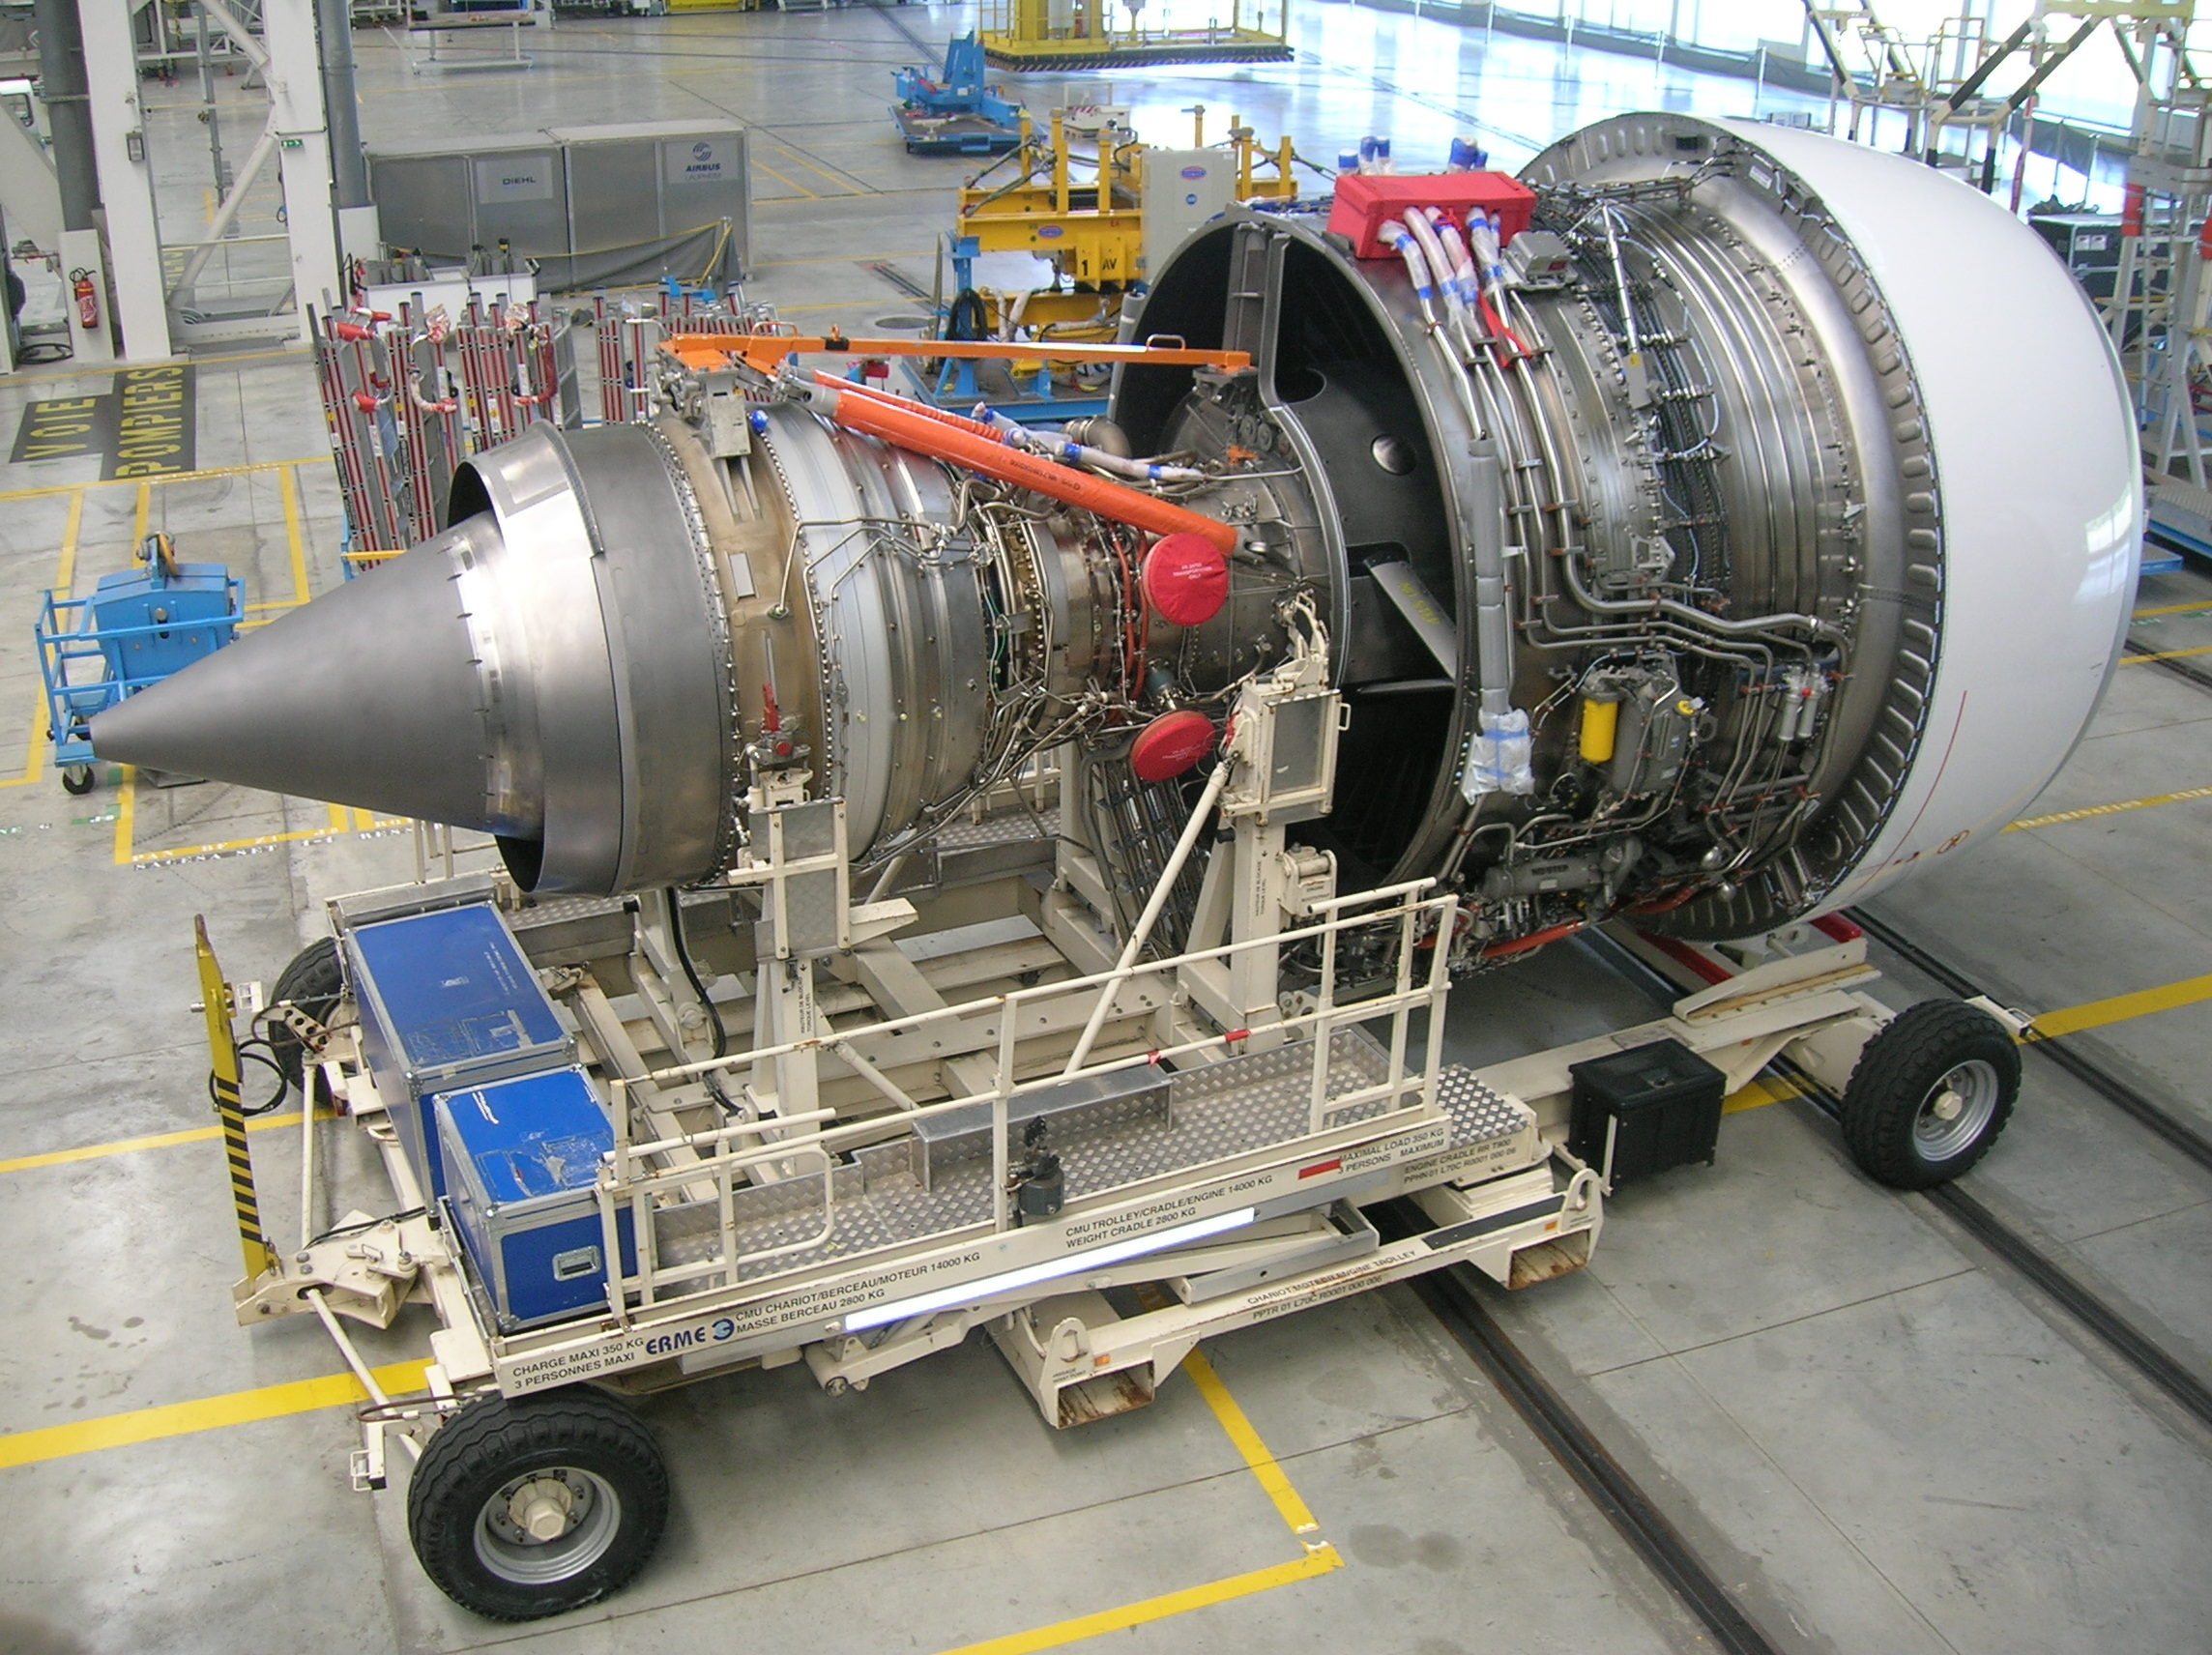 Rolls Royce Trent 900 Wikiwand